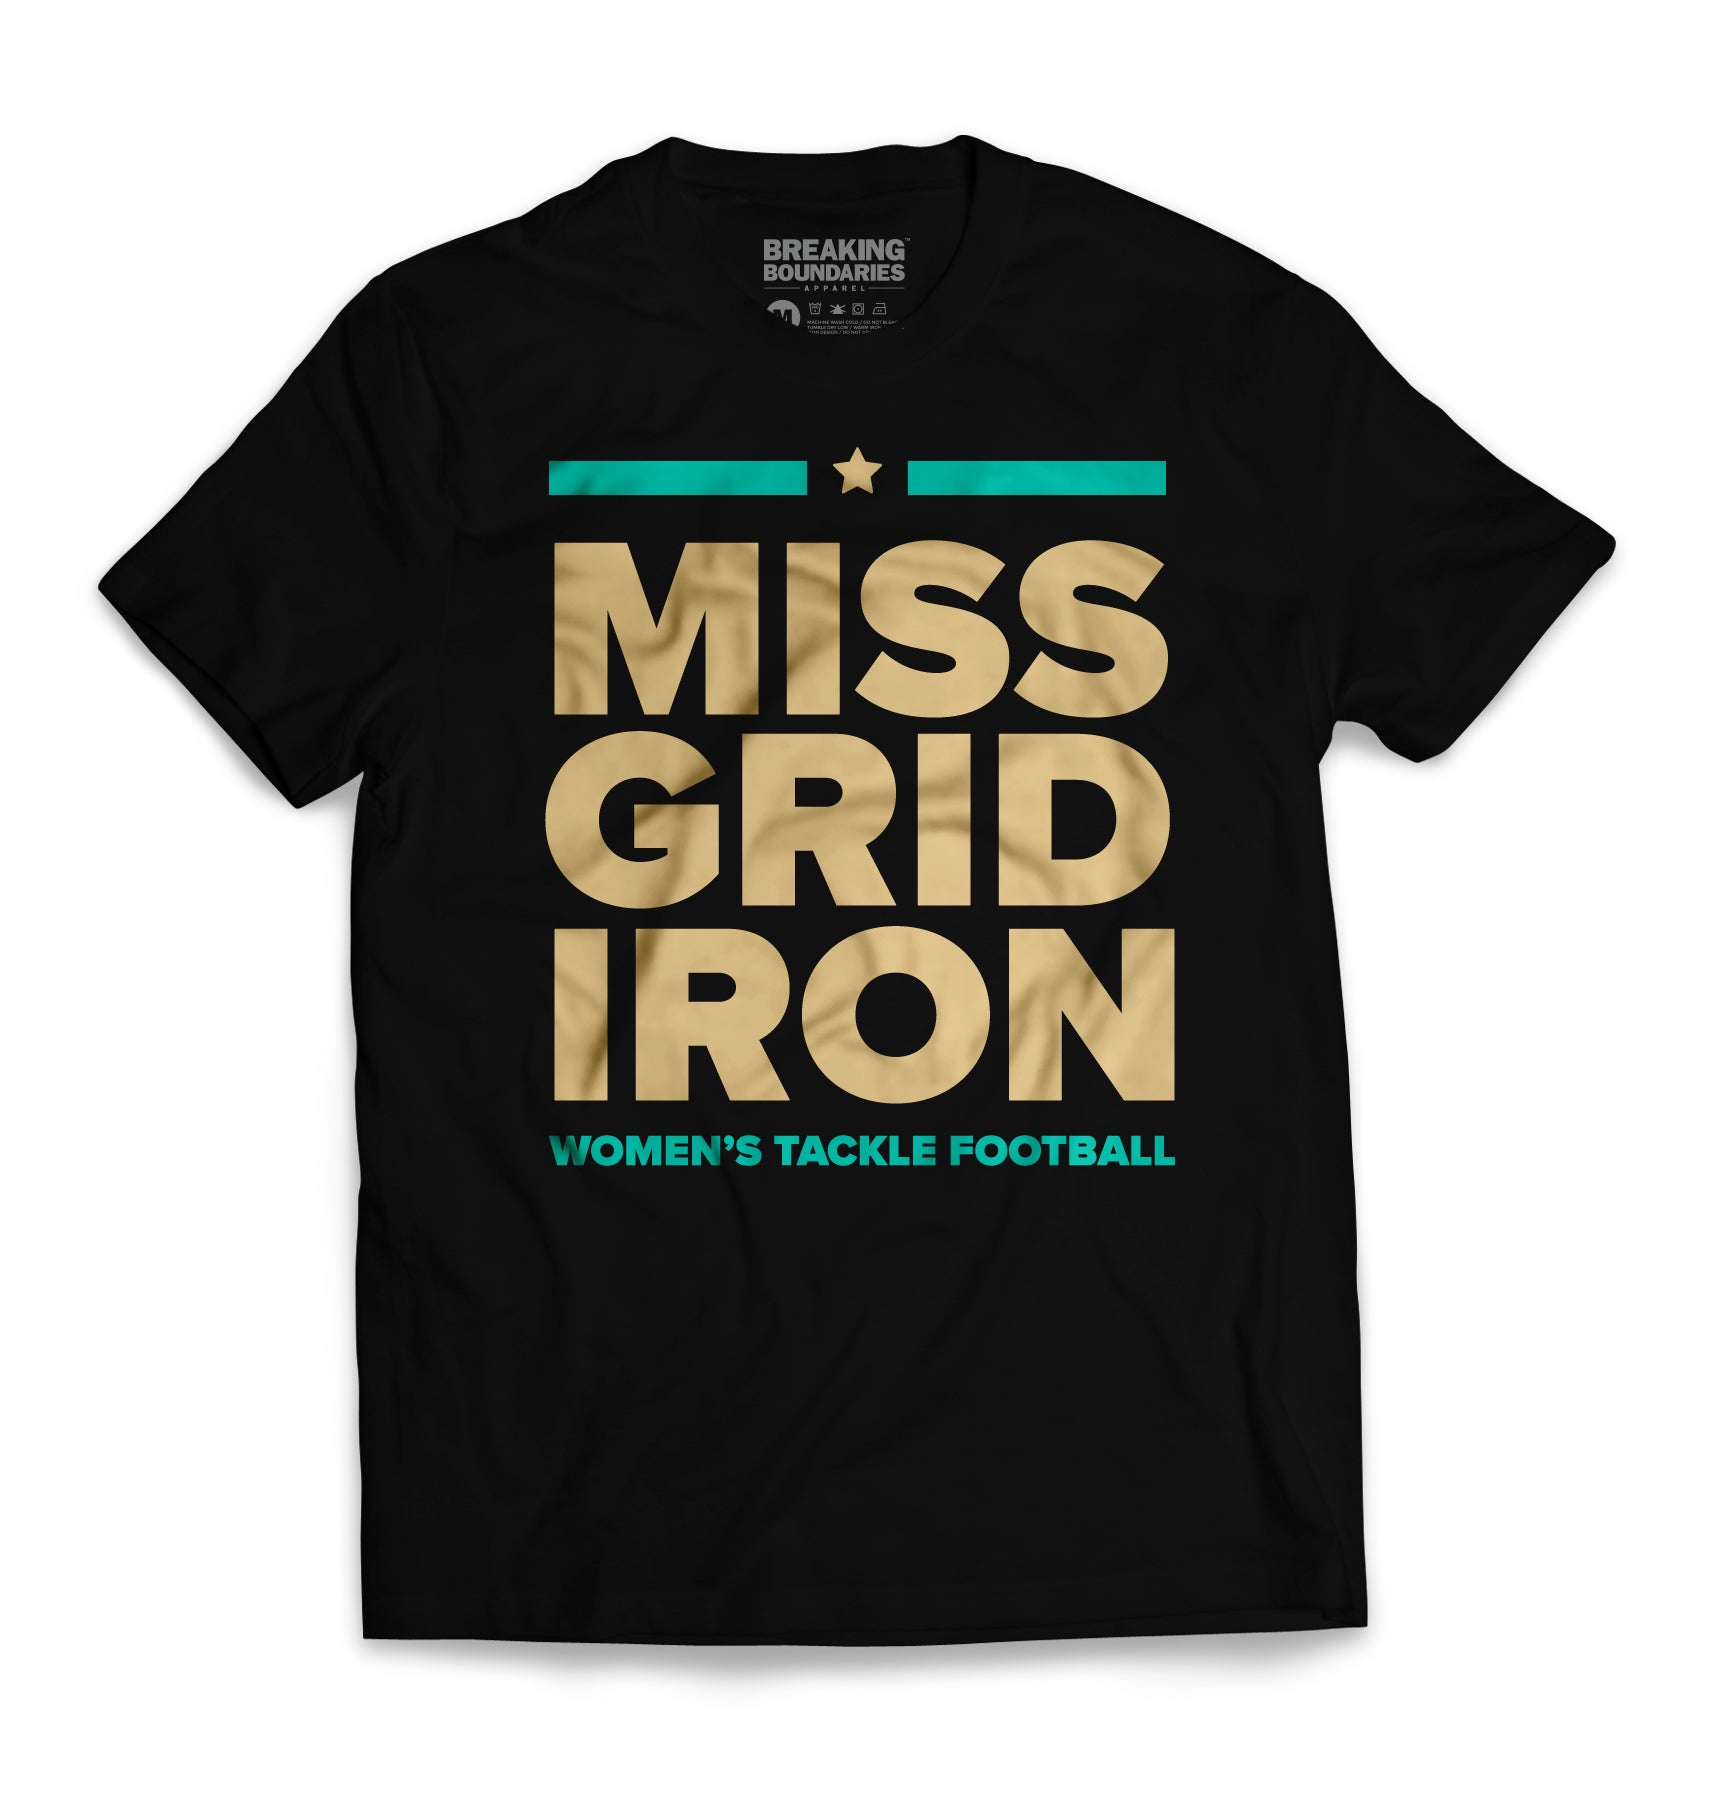 Miss Gridiron Tee - Black/Gold/Teal